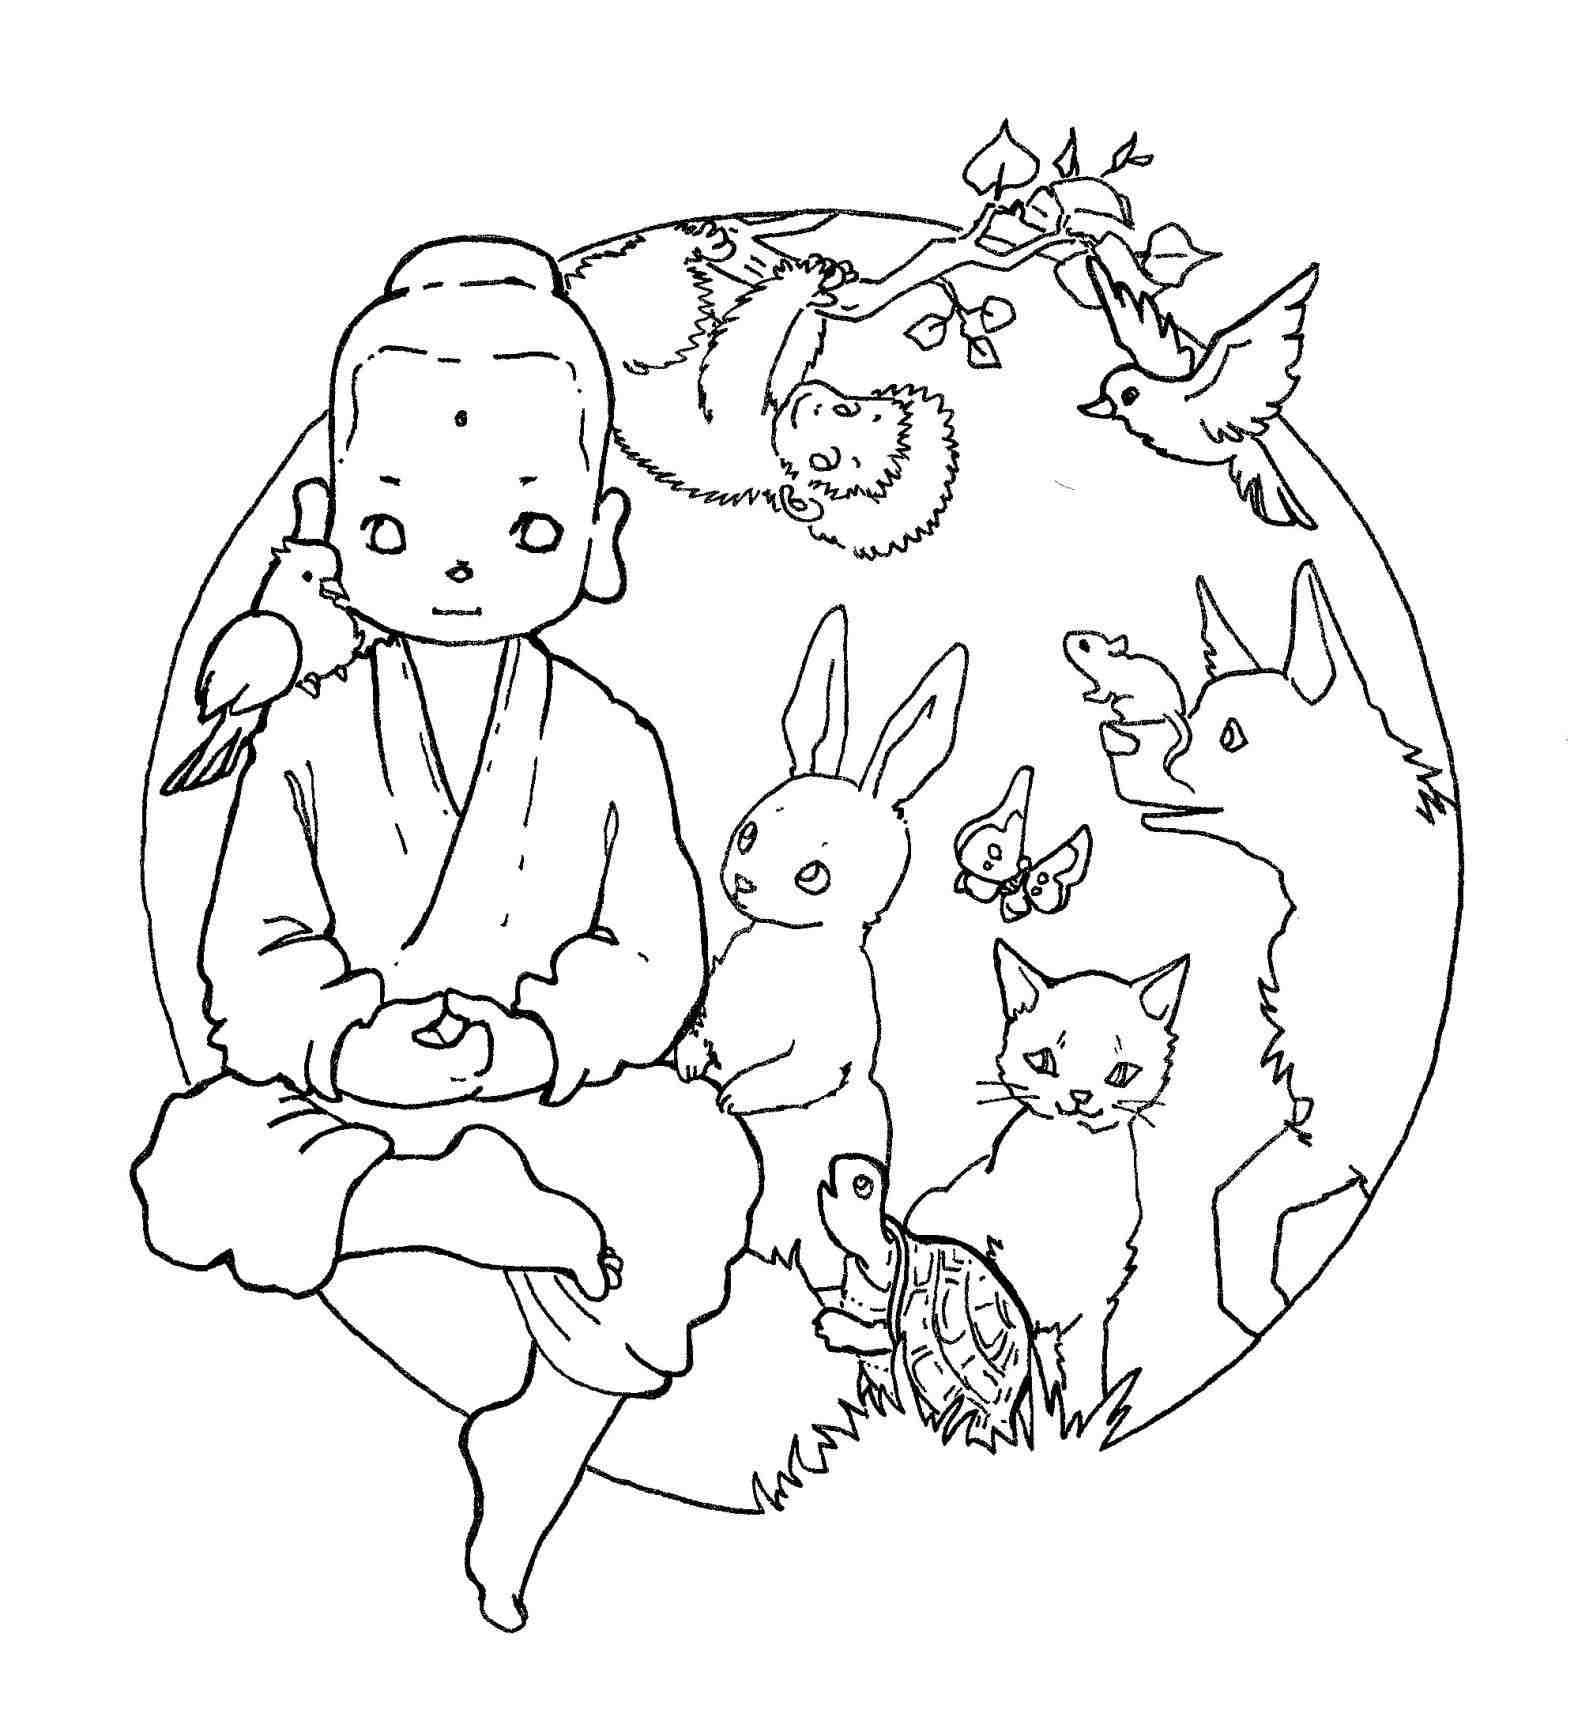 Buddhist Monk Drawing at GetDrawings.com | Free for personal use ...